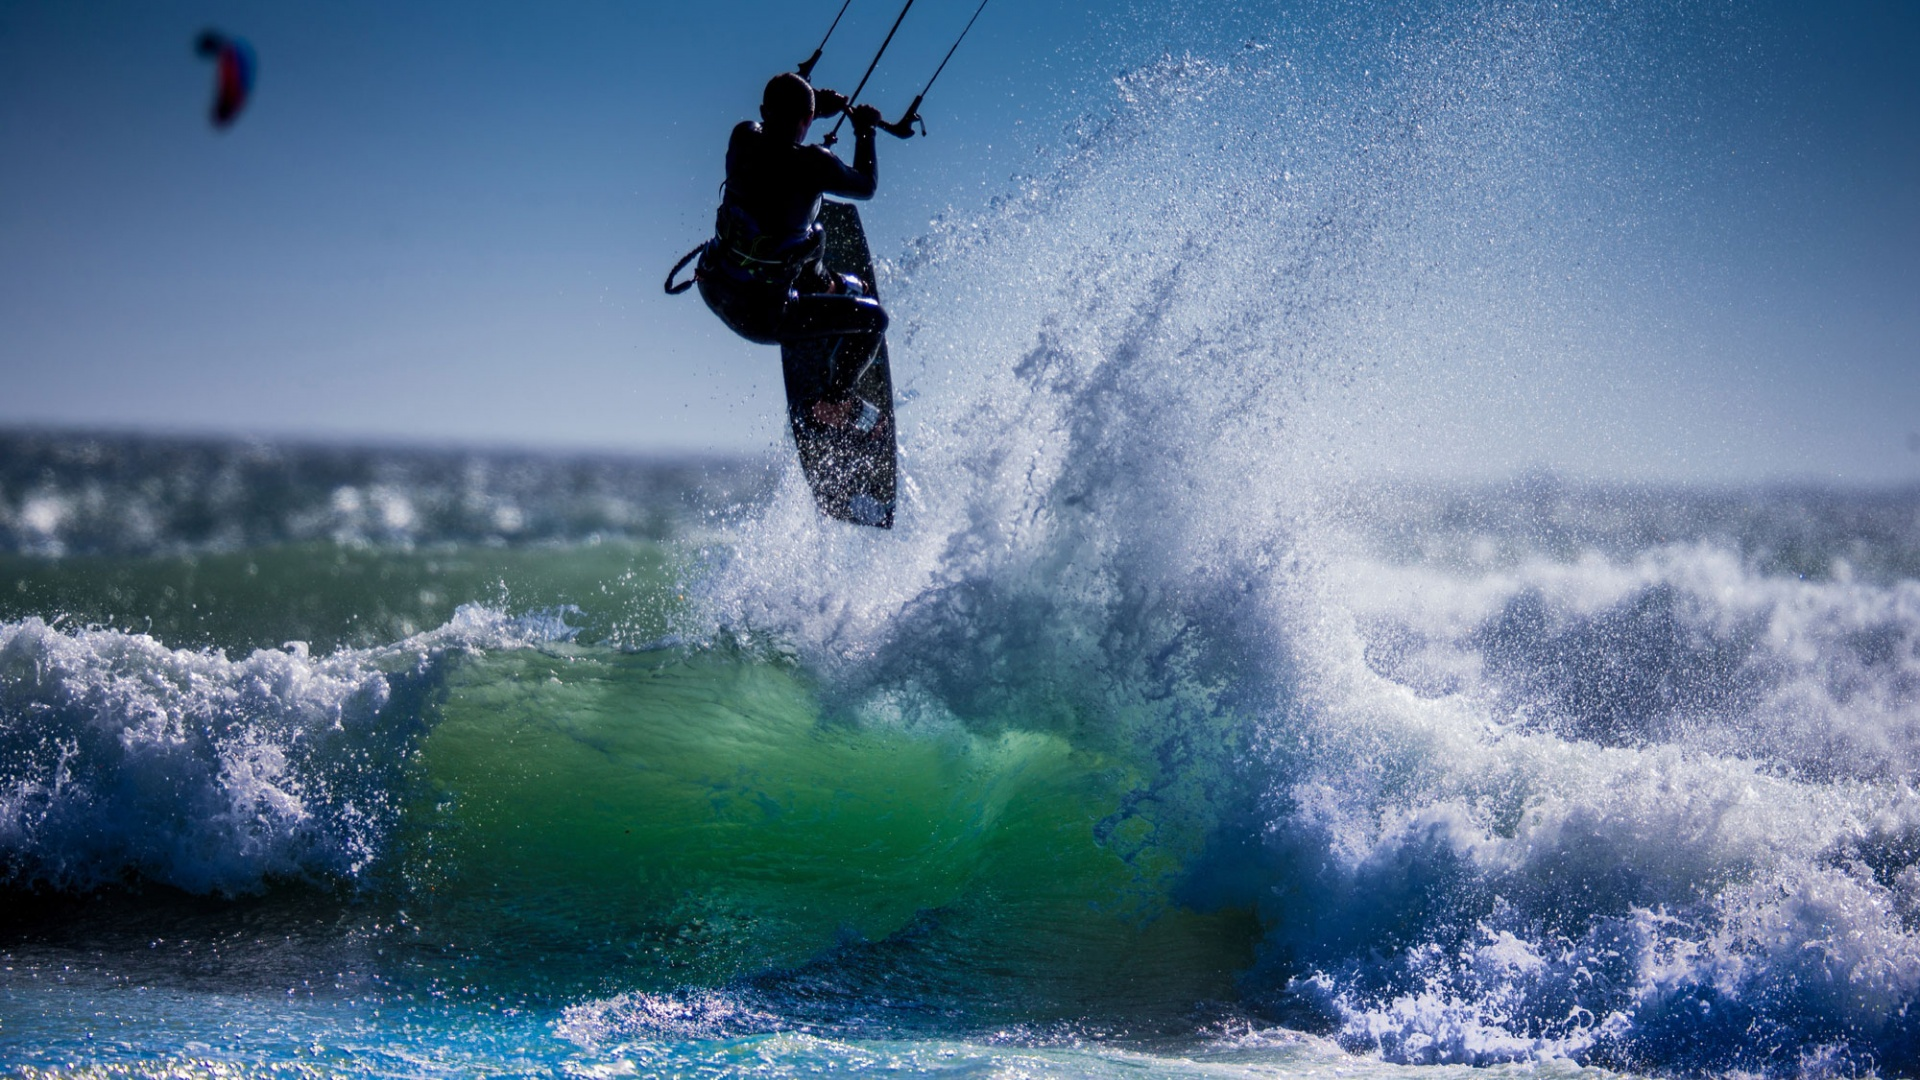 Kitesurfing For Beginners: What Is It? Who Invented It? And, Where ...